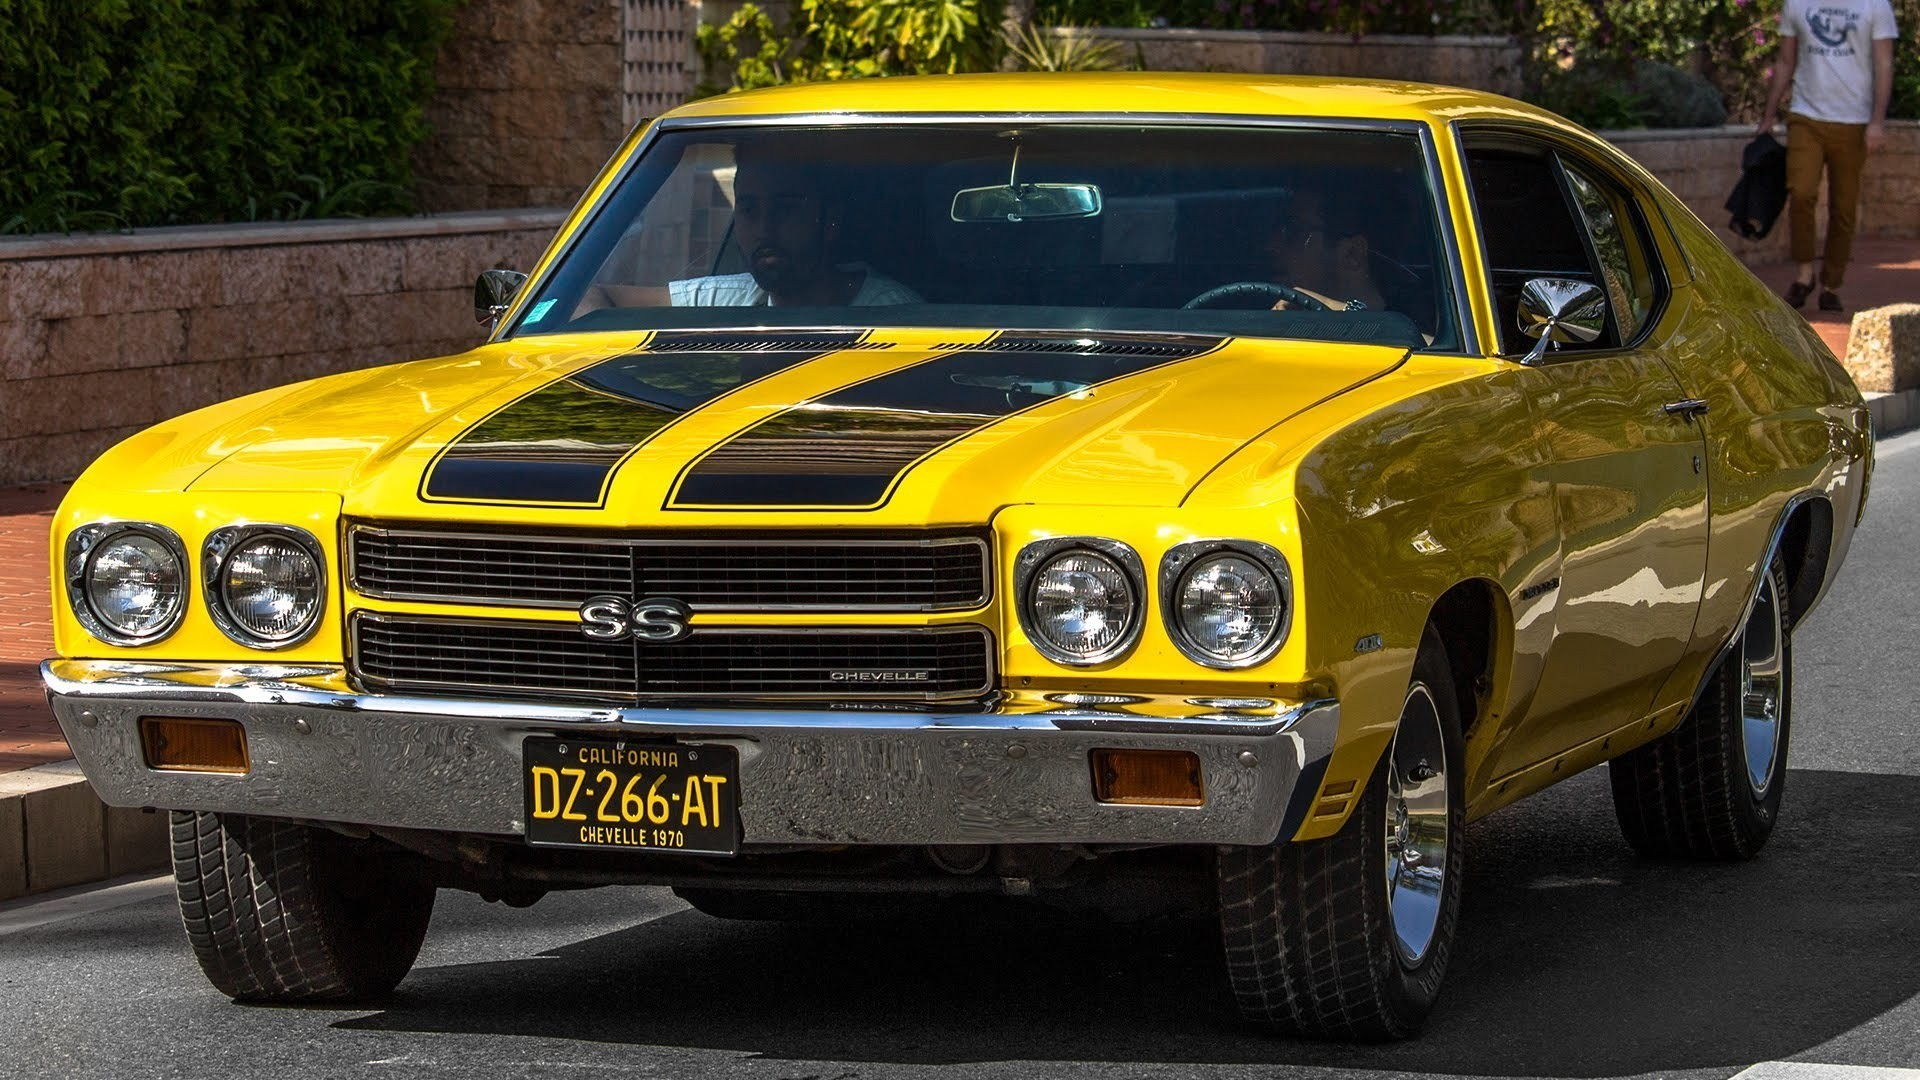 1970 Chevelle Ss Wallpaper 70 Pictures